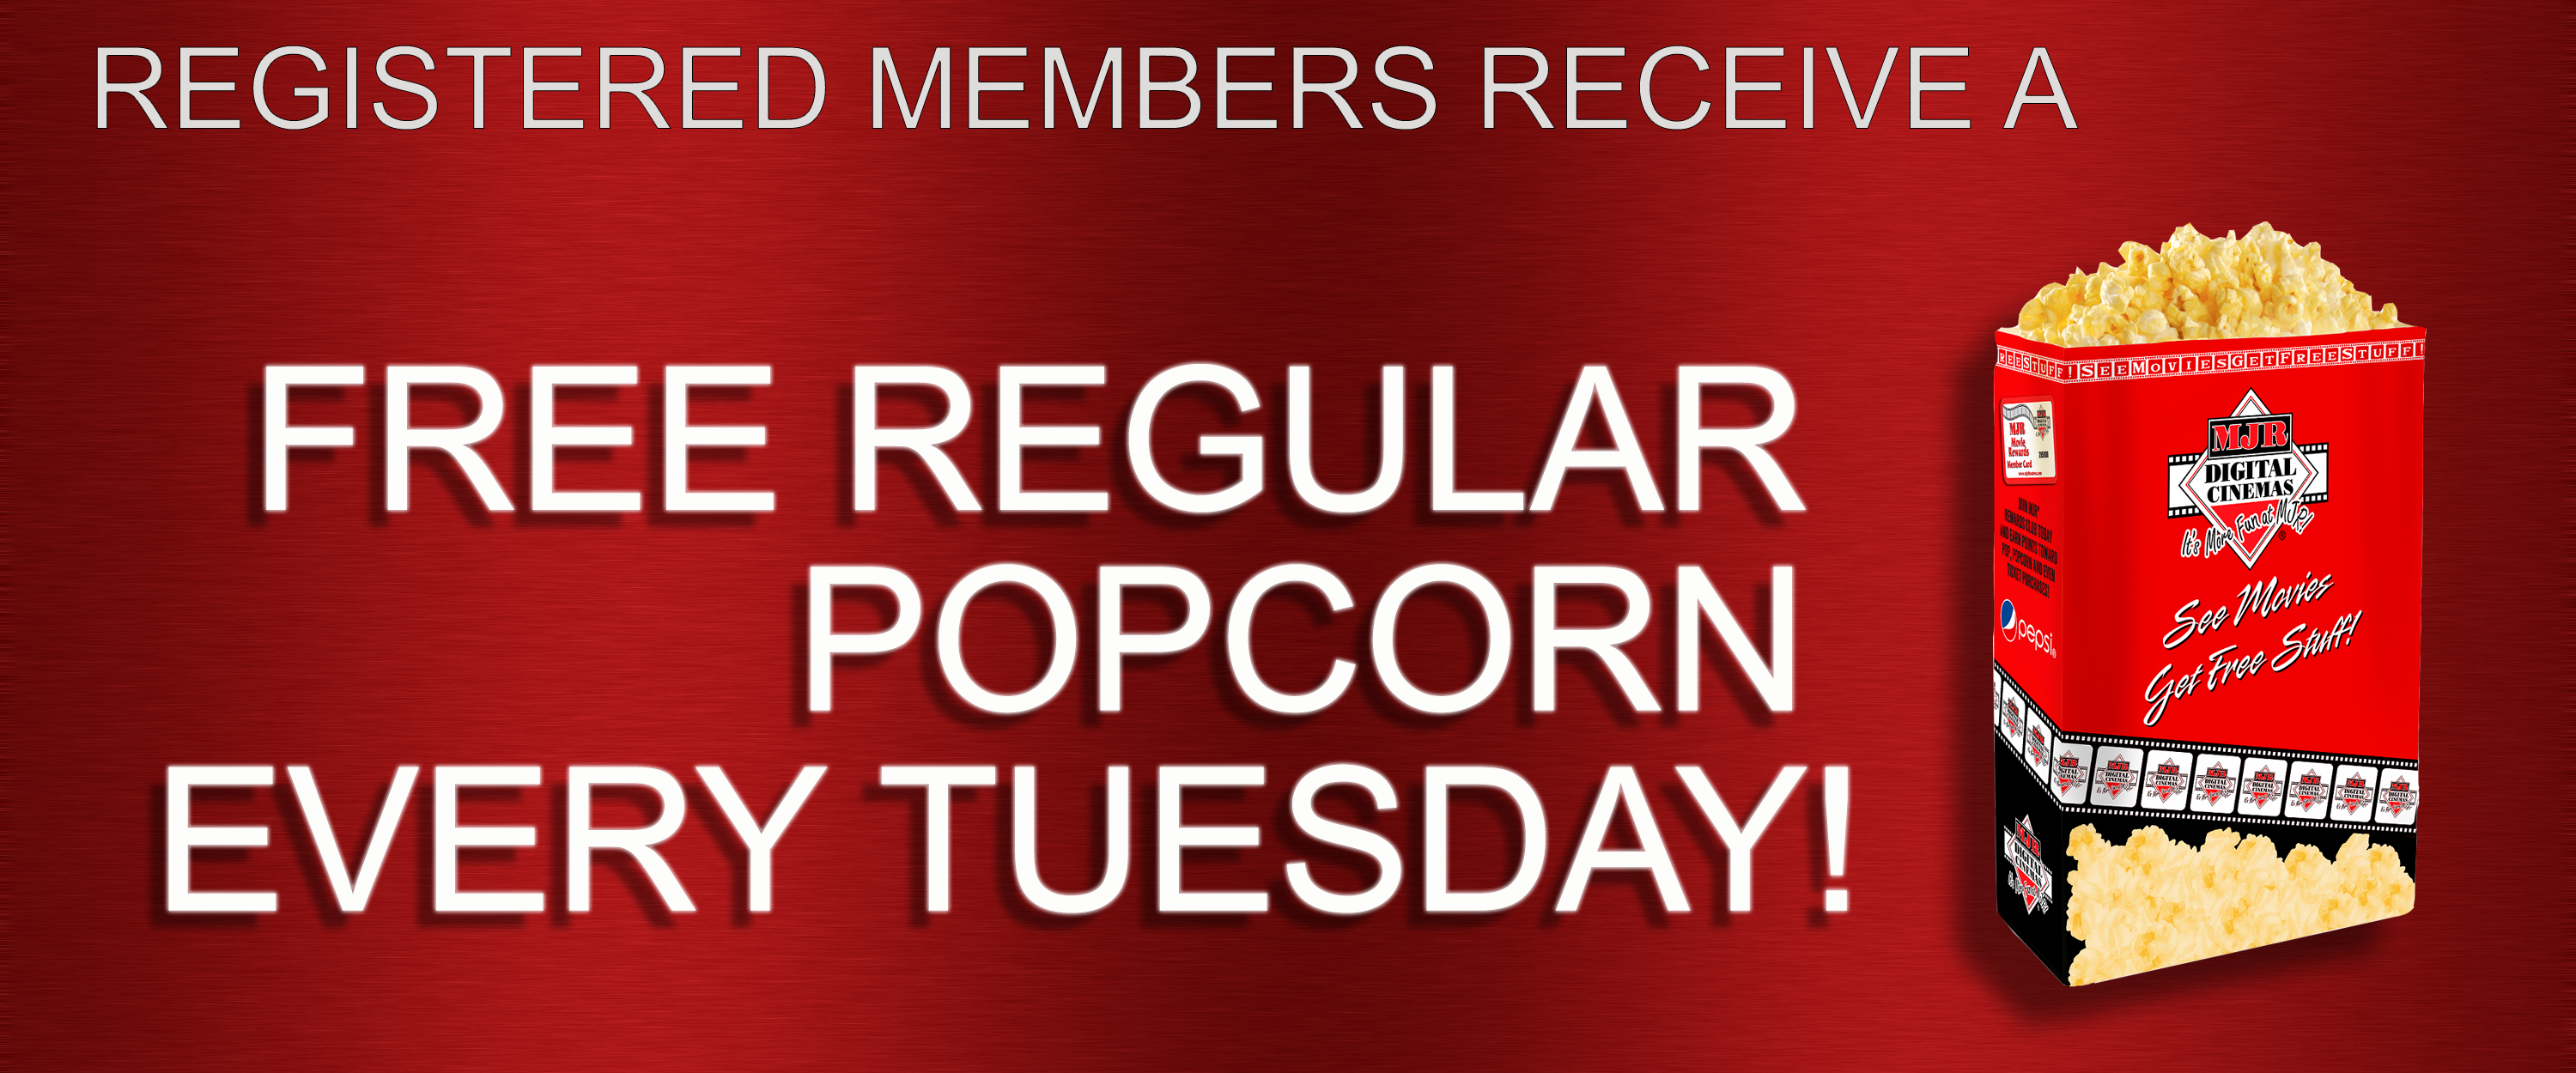 Registered members receive a free regular popcorn every tuesday